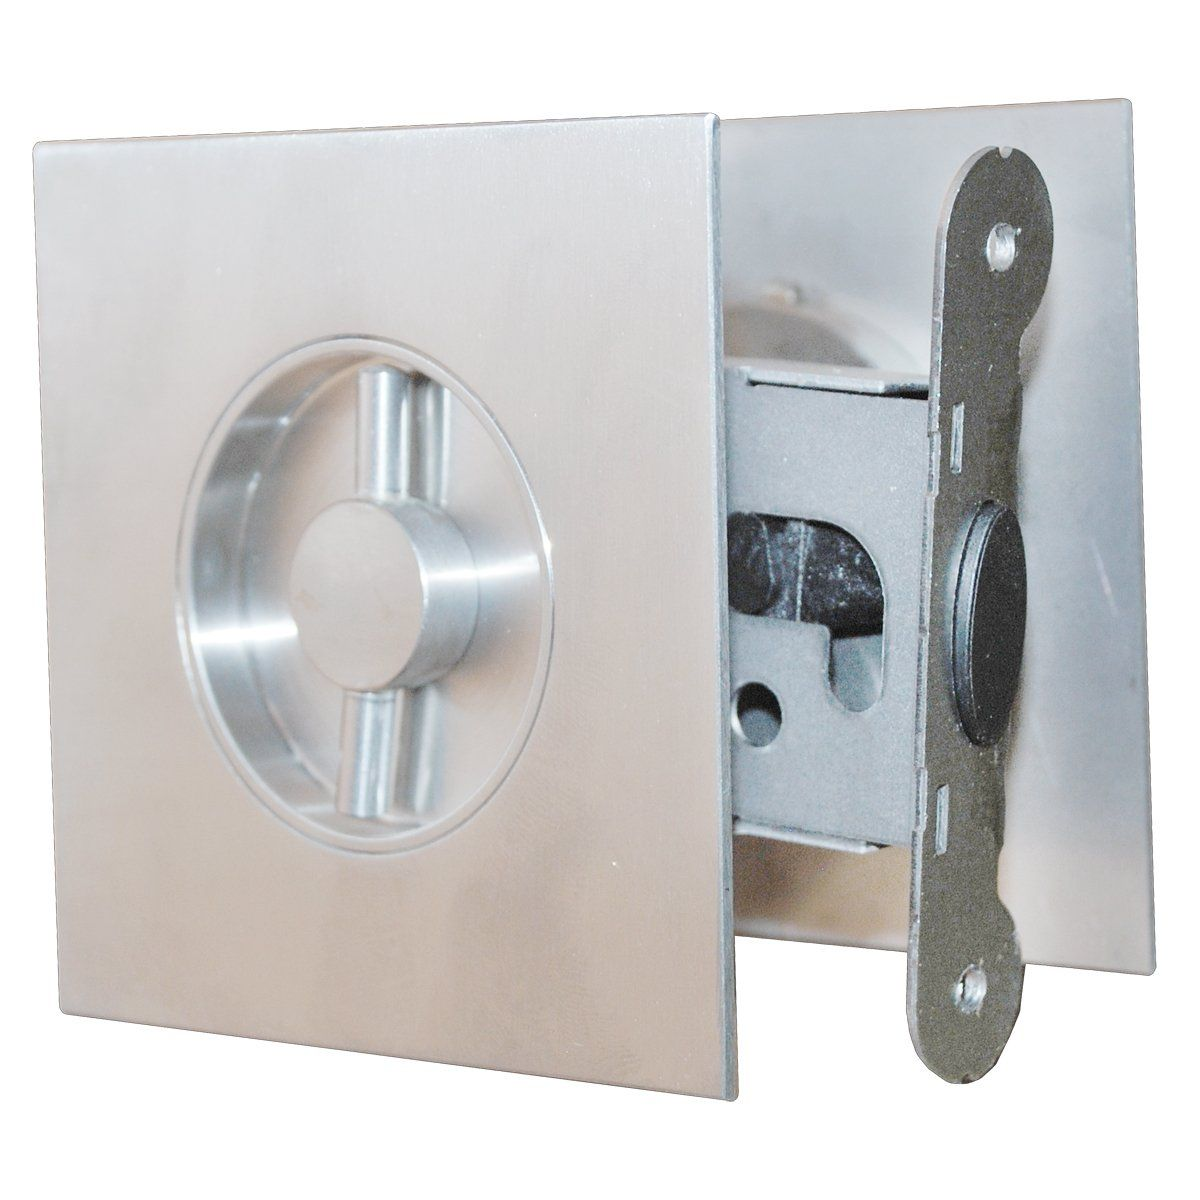 Pocket door bathroom lock - Jako Design Hardware 53300 Sliding Lock Pocket Door Hardware Knobs And Hardware